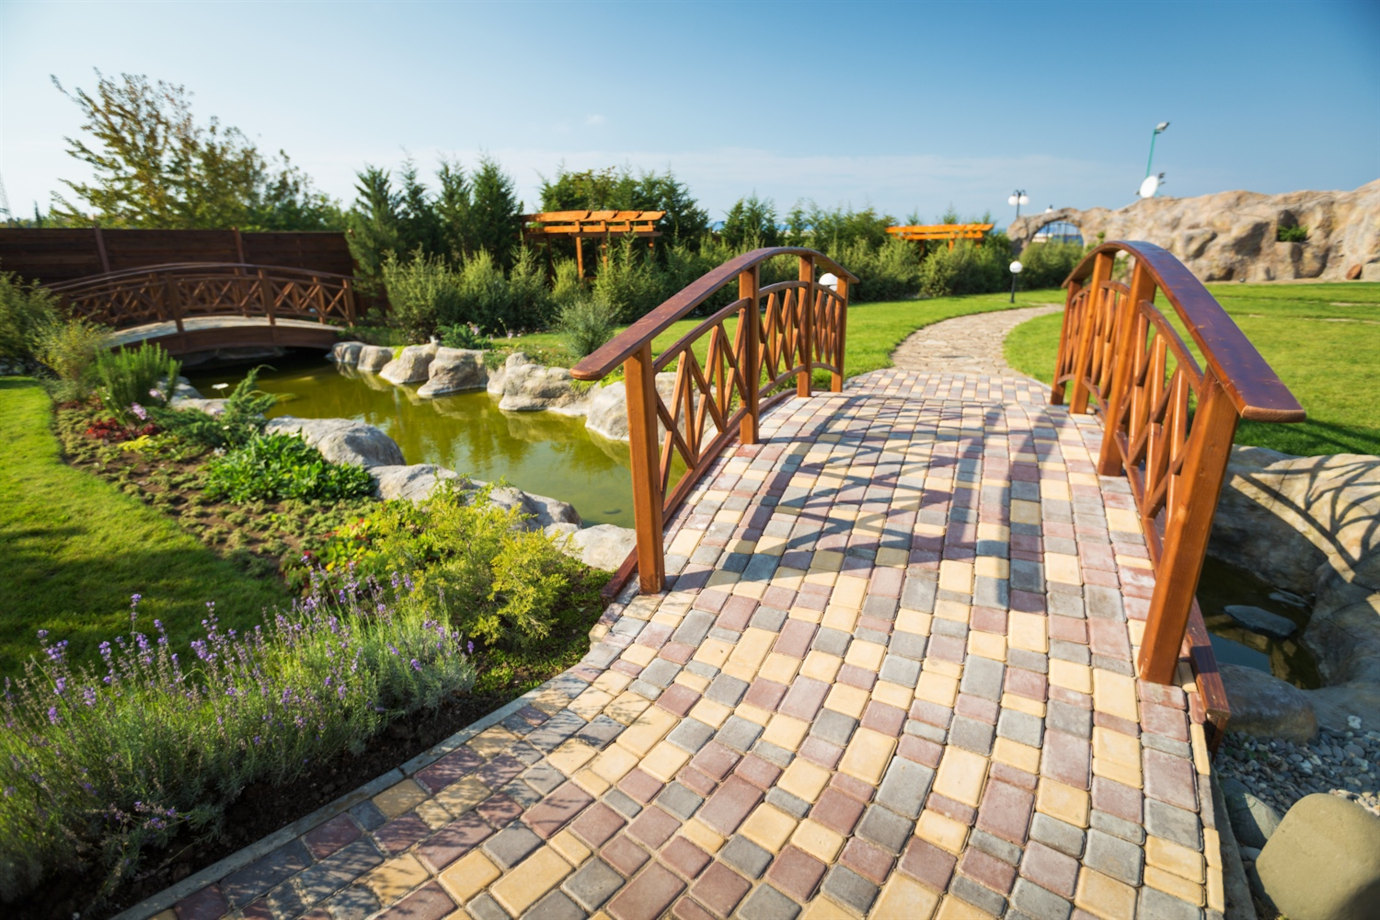 Design your walkway with the help of stone. We will help you to develop your place into beautiful garden. Tile installation service in your garden.